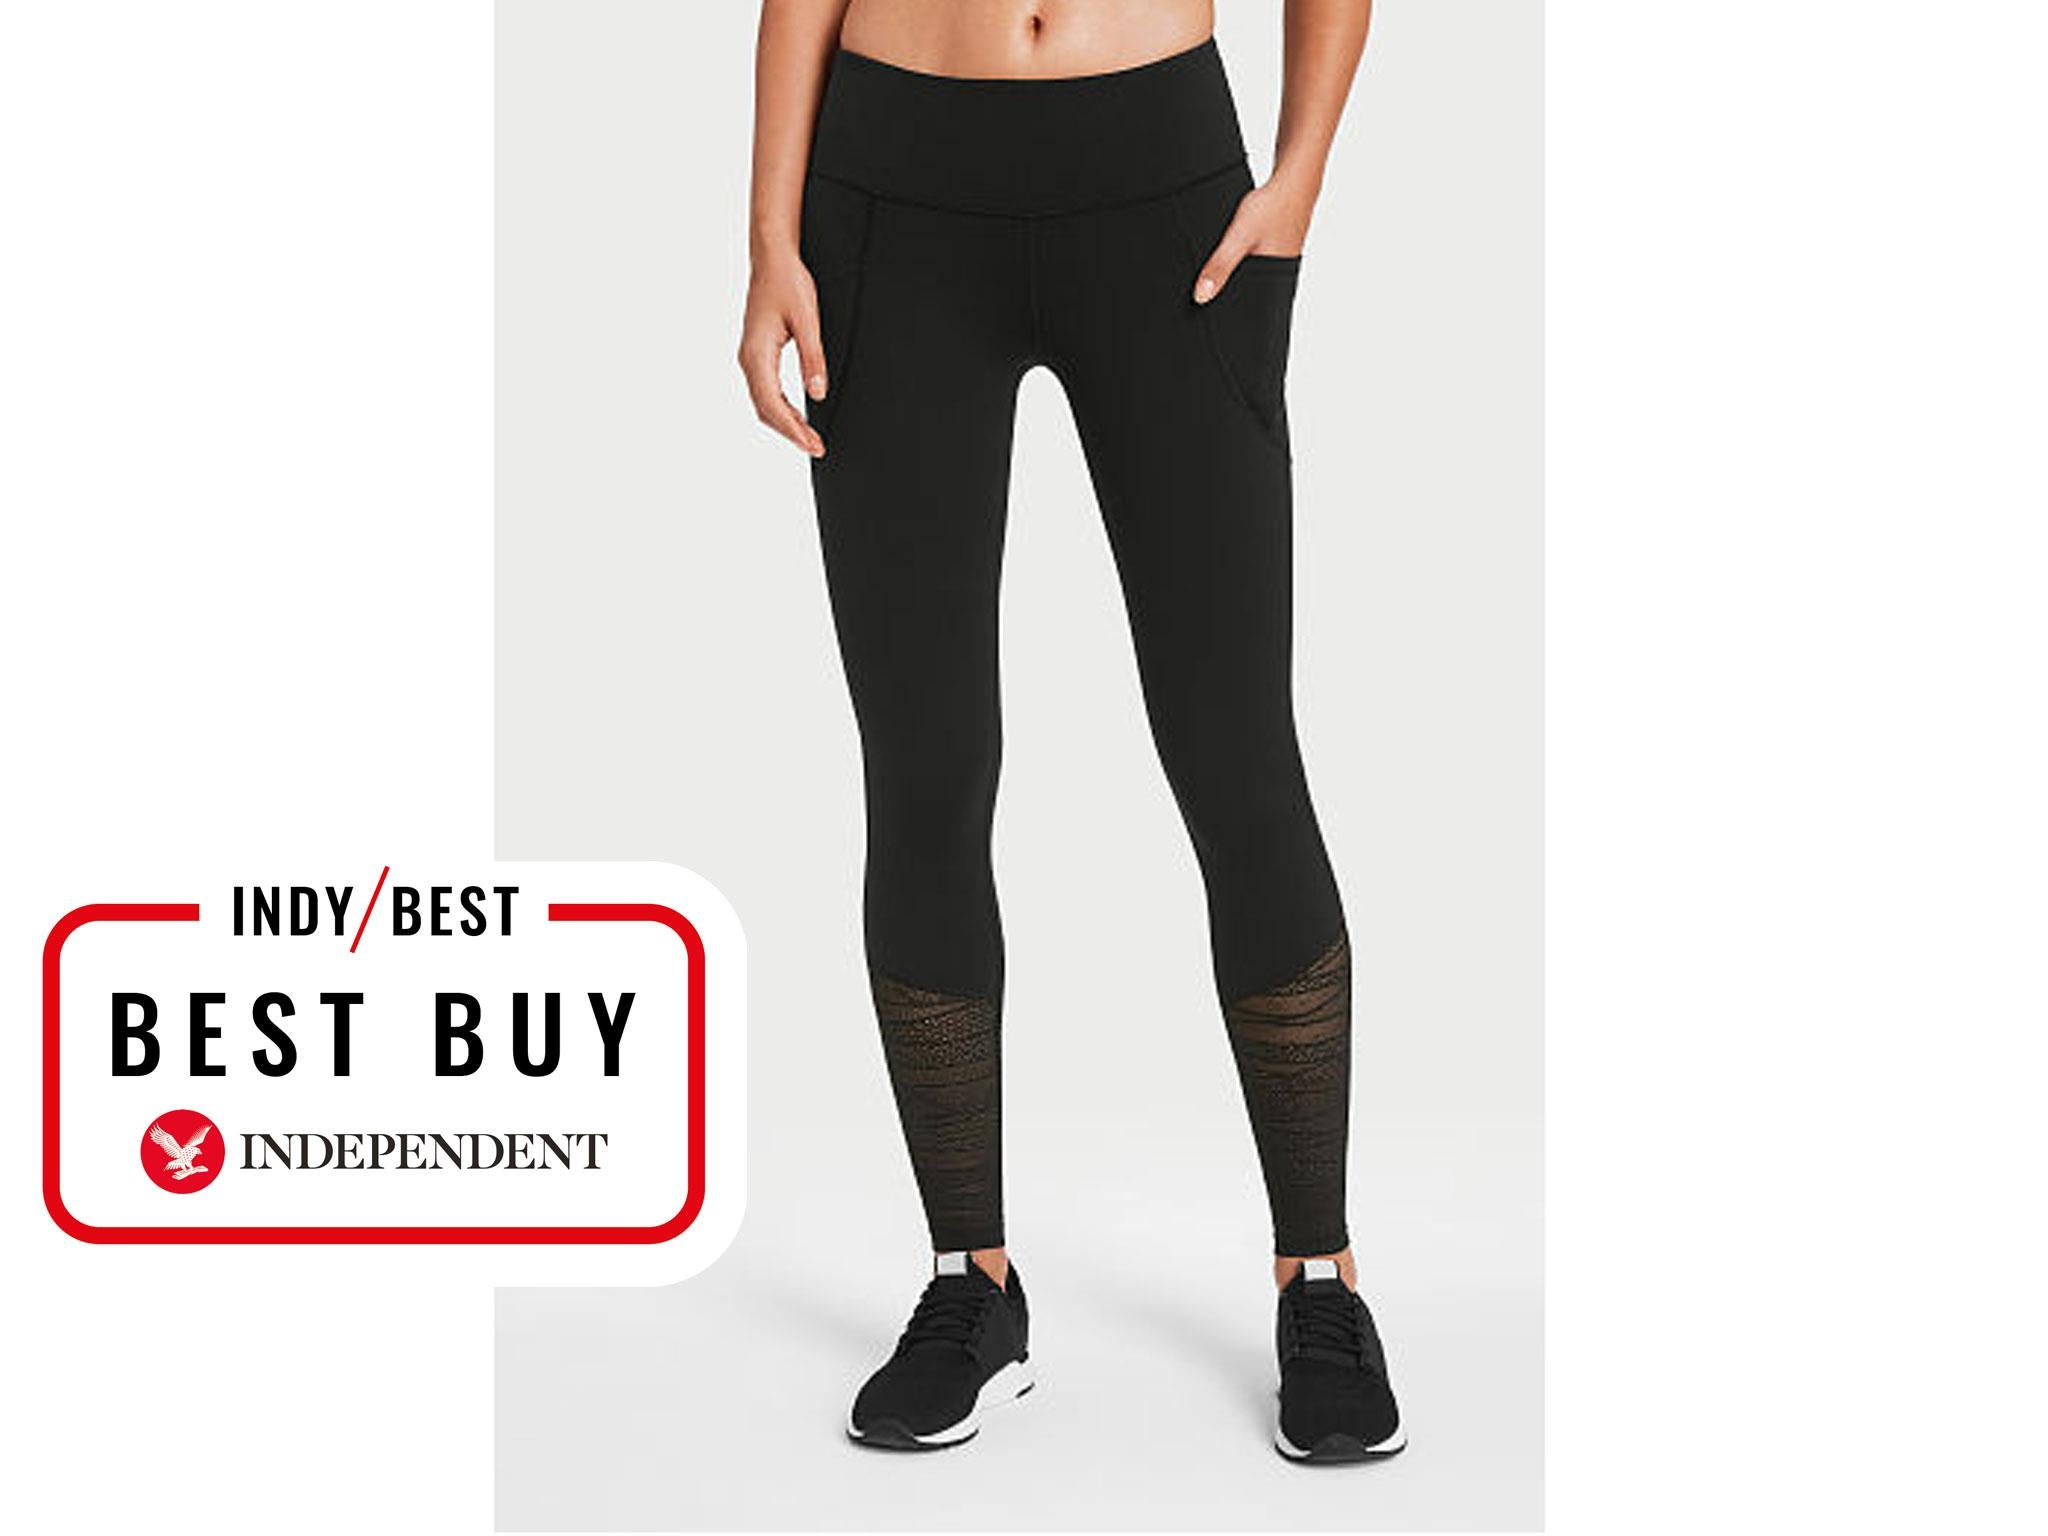 7bf02194056b8 Victoria's Secret Knockout Leggings: £68.43, Victoria's Secret. These gym  leggings ...